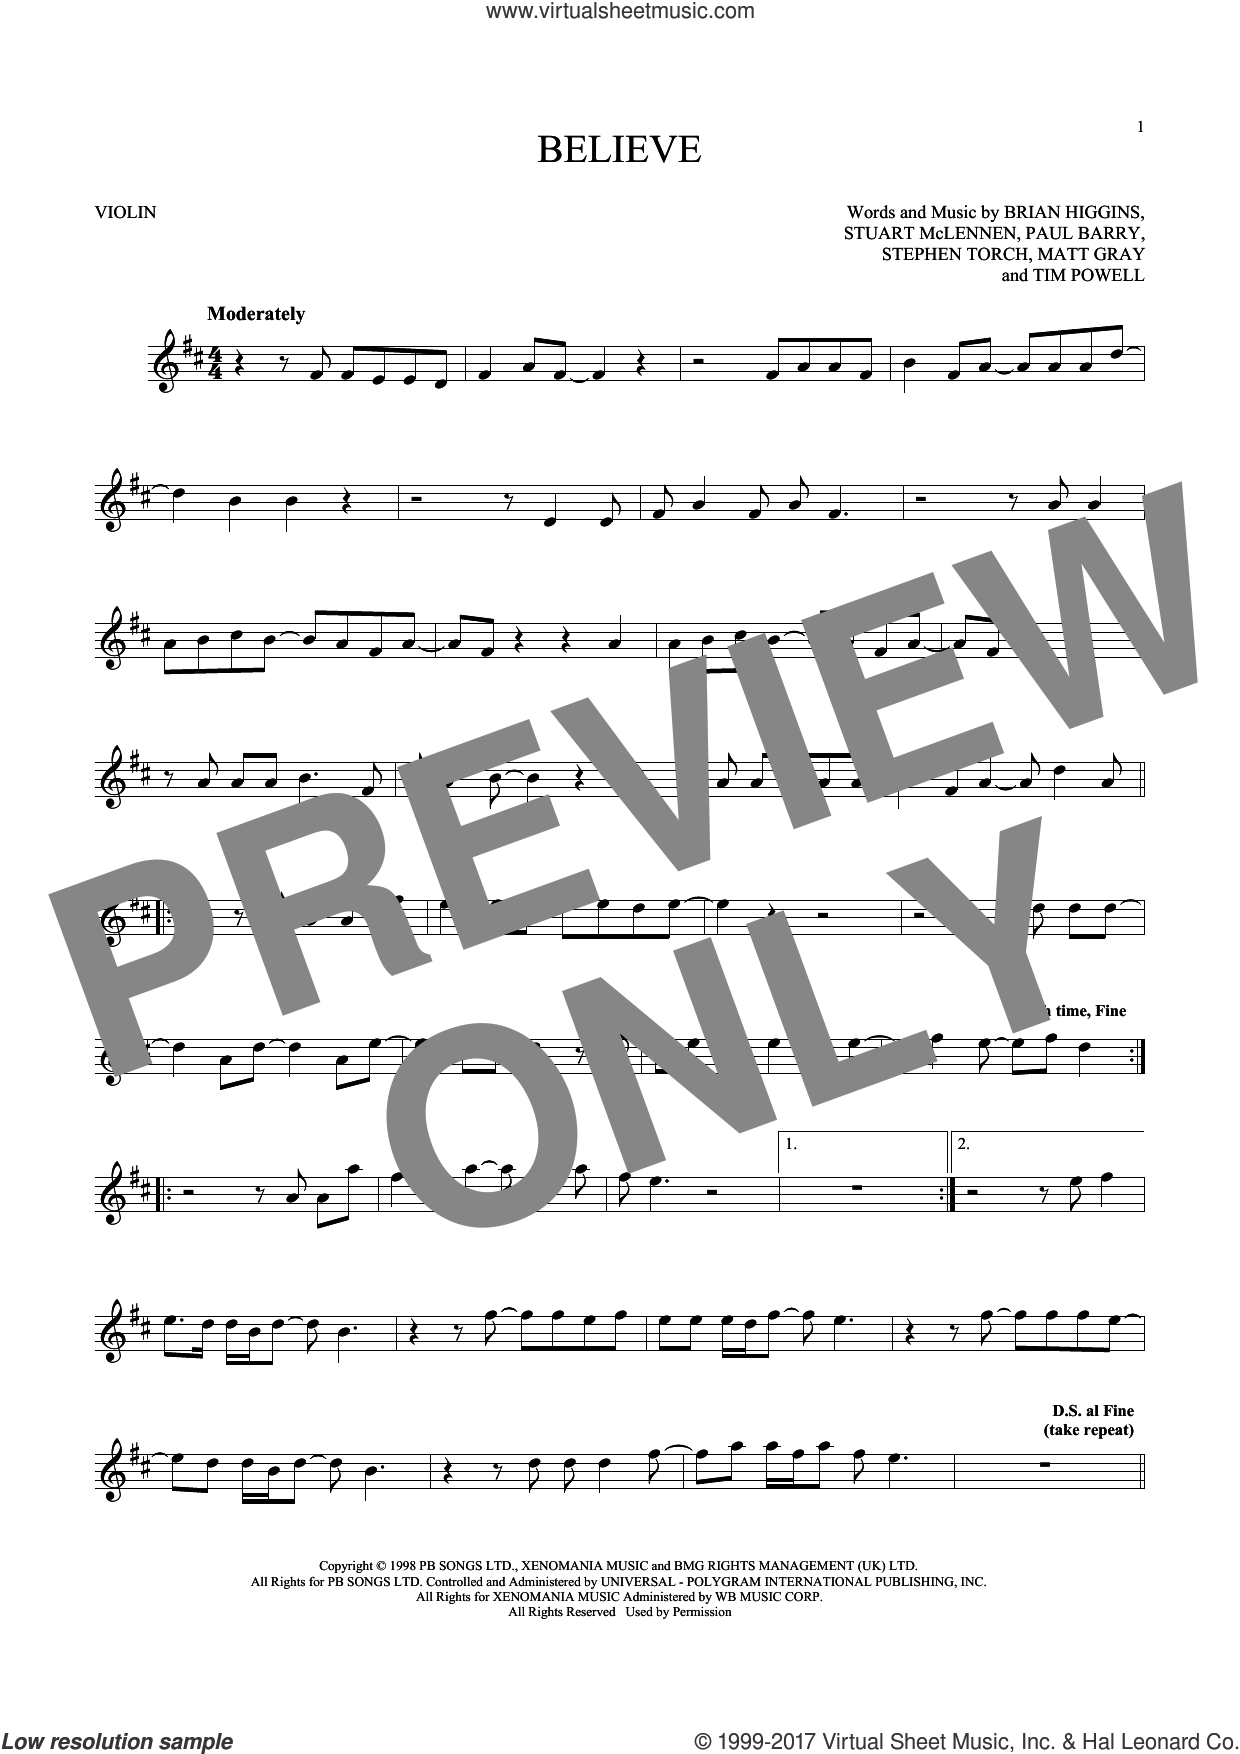 Believe sheet music for violin solo by Cher, Brian Higgins, Matt Gray, Paul Barry, Stephen Torch, Stuart McLennen and Timothy Powell, intermediate skill level